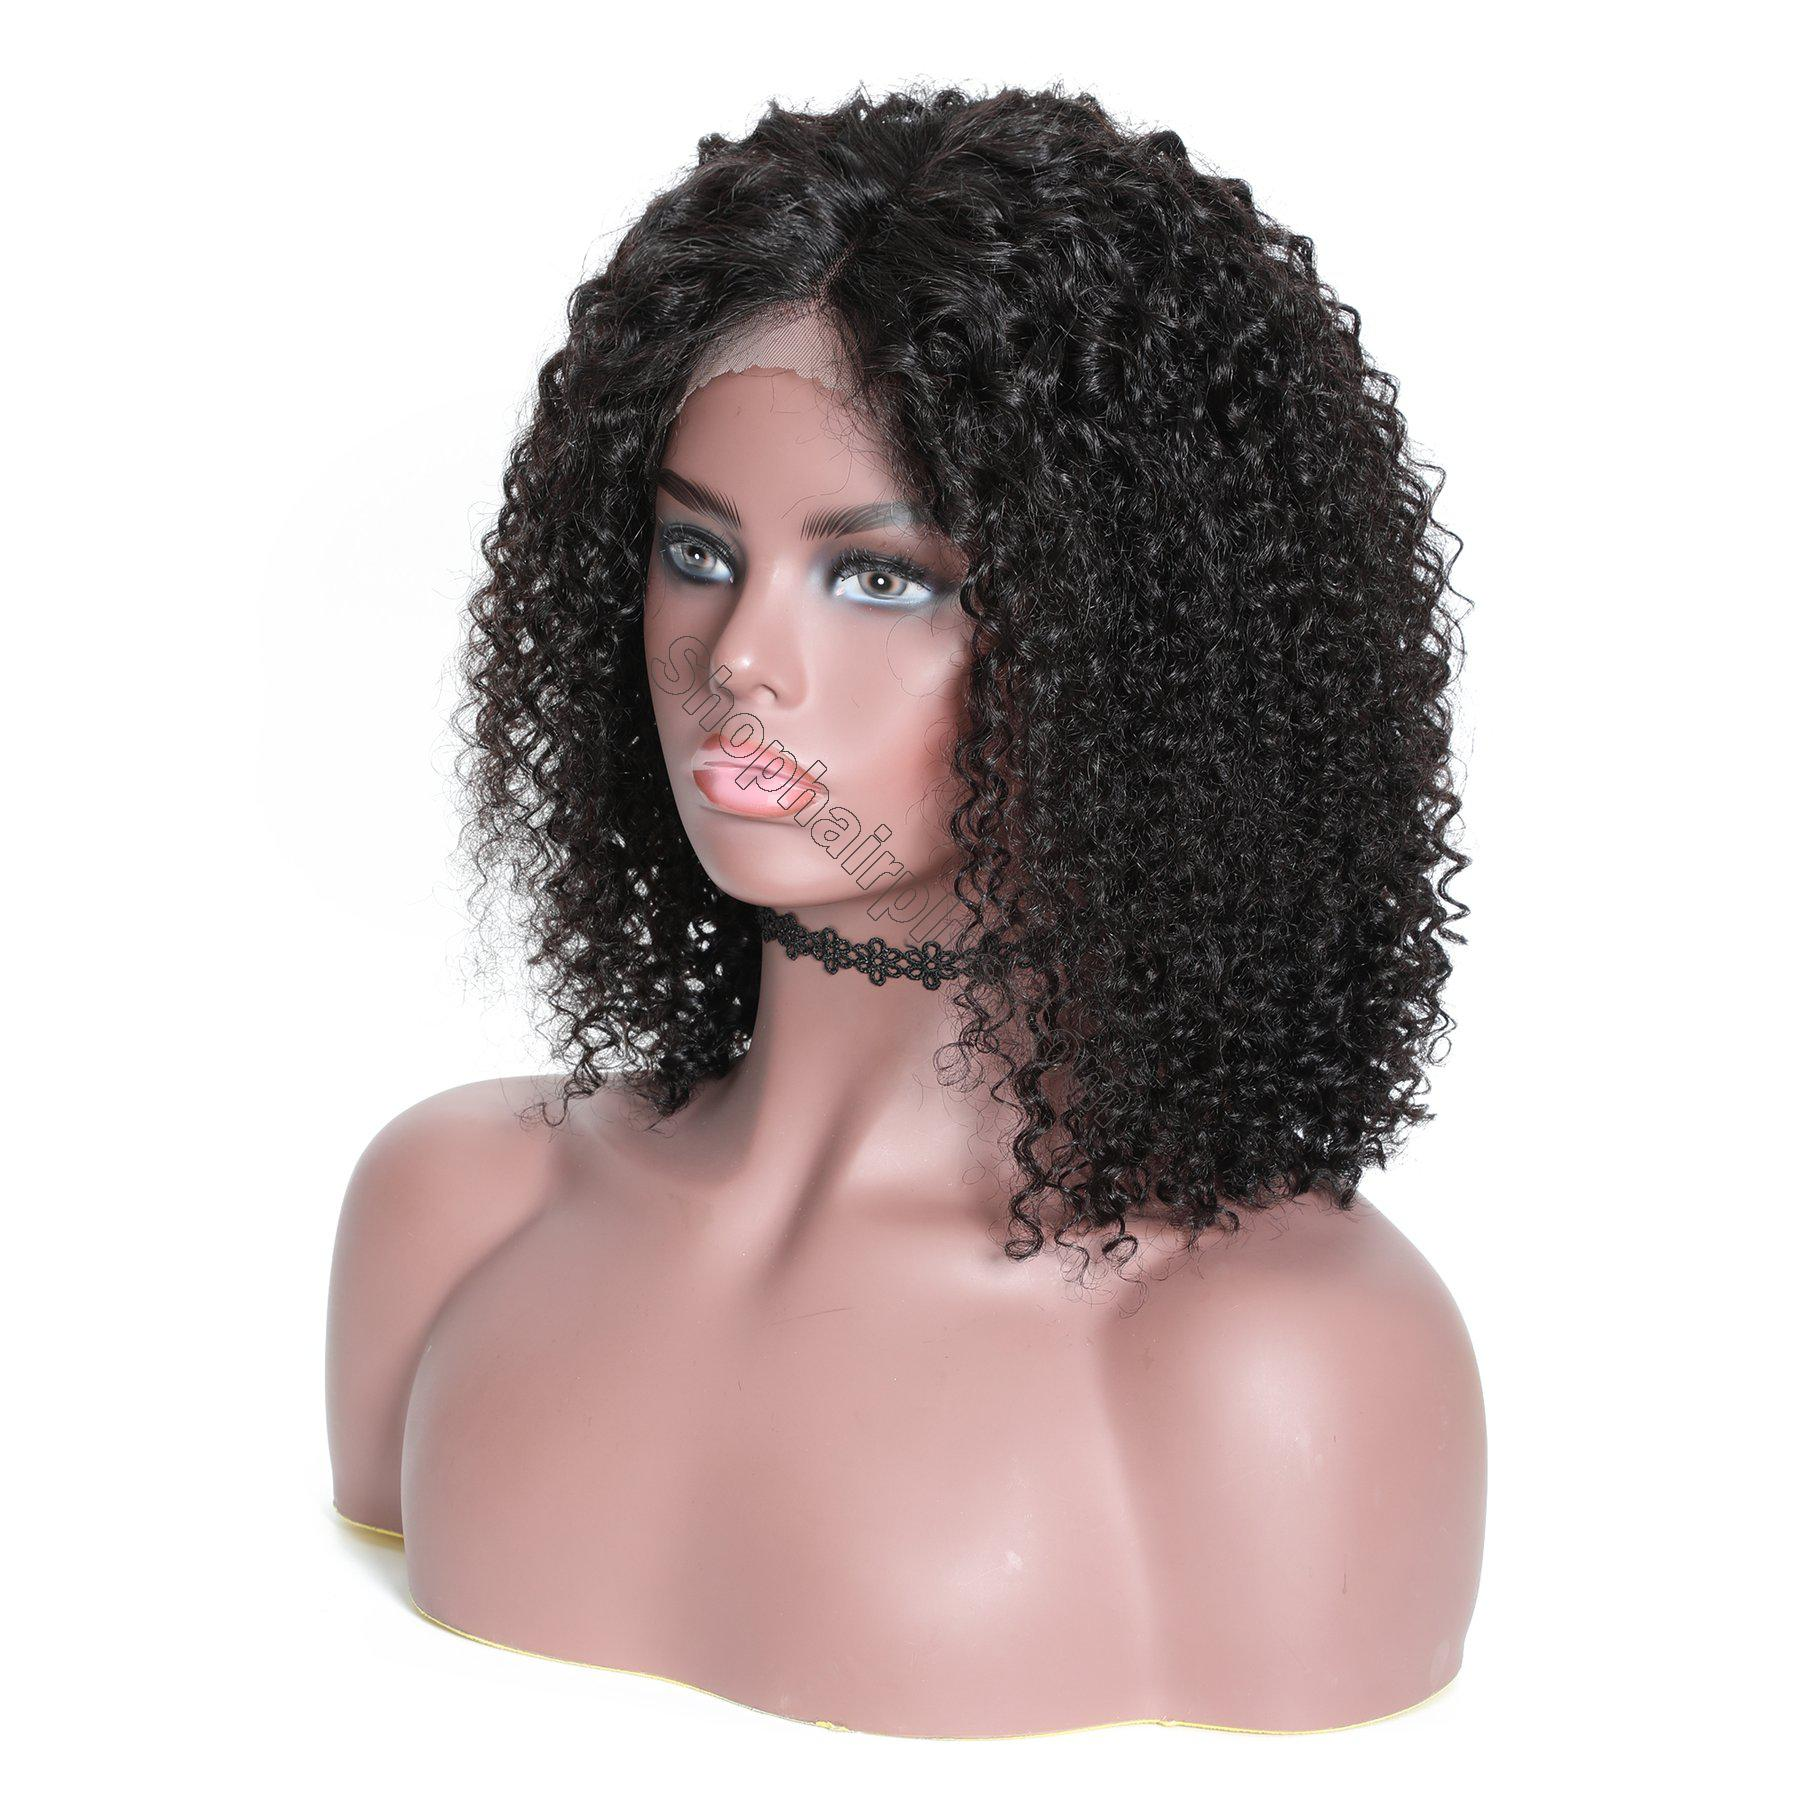 9A 13*4 Short Bob Curly Hair Lace Front Wig On Deals, 150%/180% Densit 9